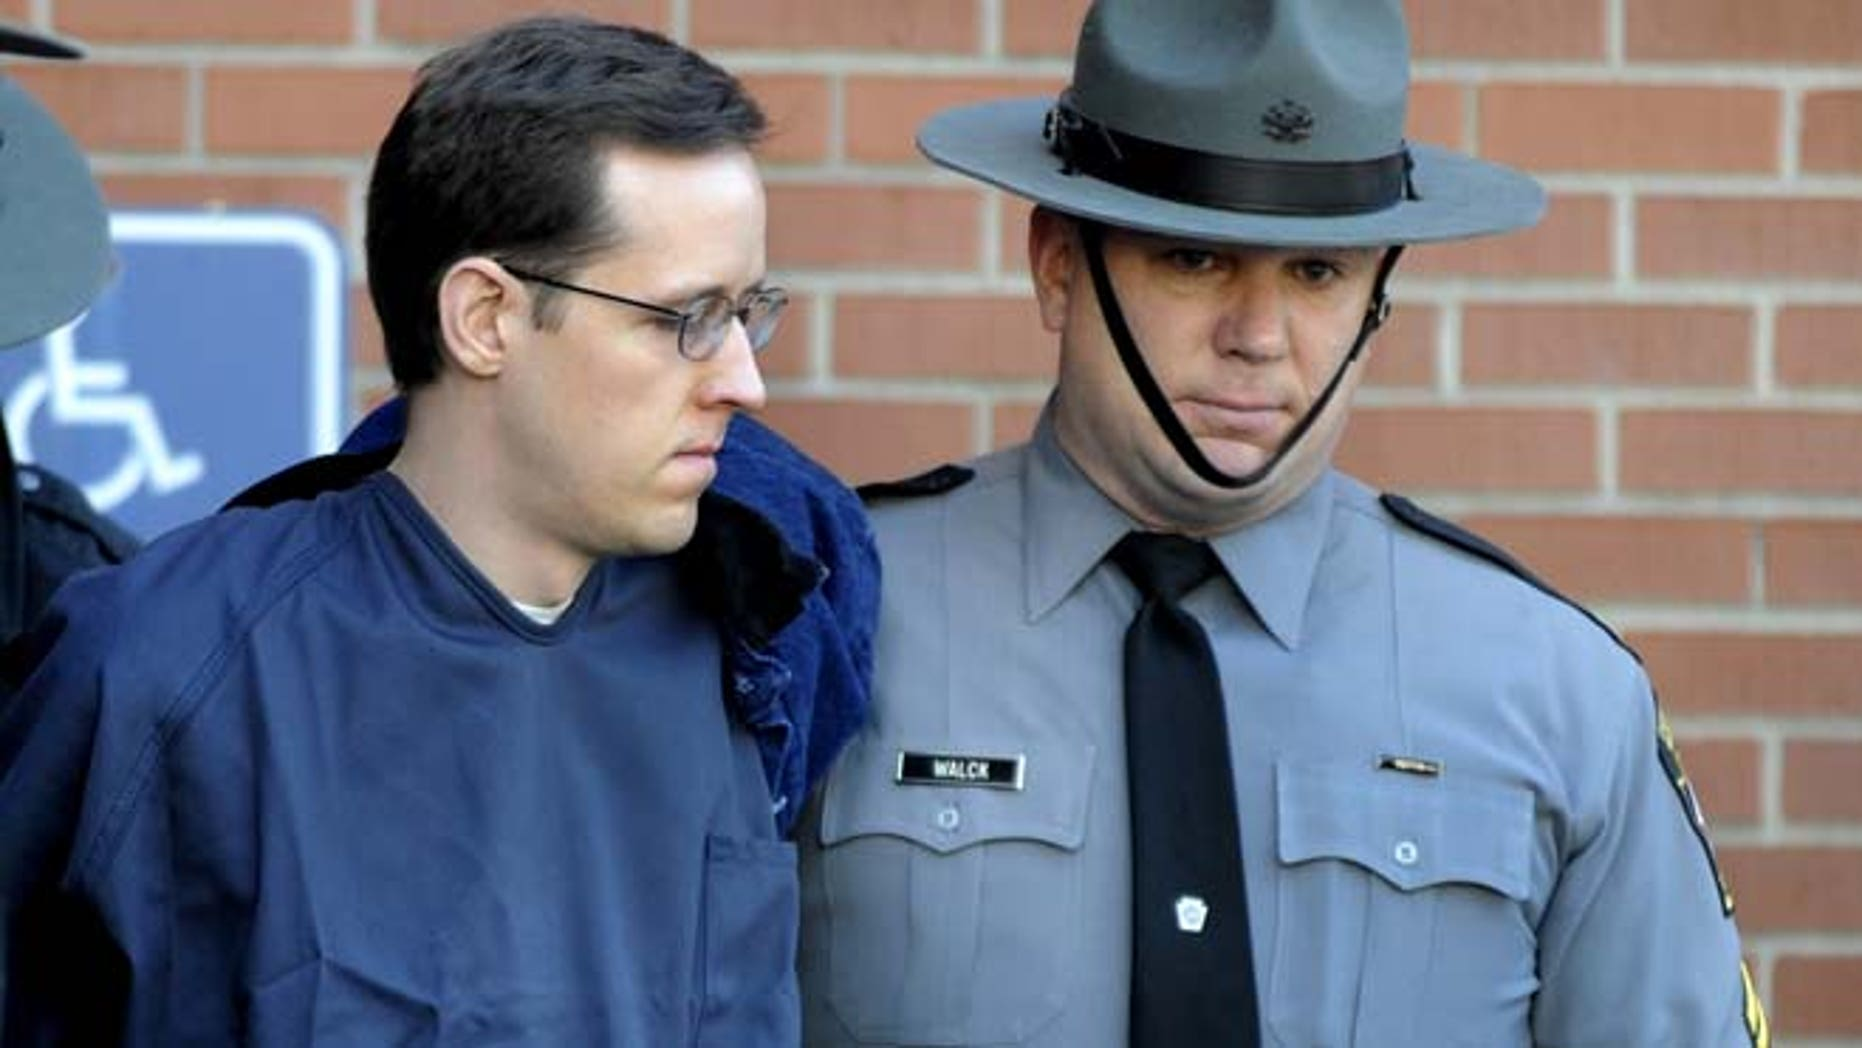 Jan. 5, 2015: In this file photo, Eric Frein, left, is led from the Pike County Courthouse after his preliminary hearing in Milford, Pa. (AP)